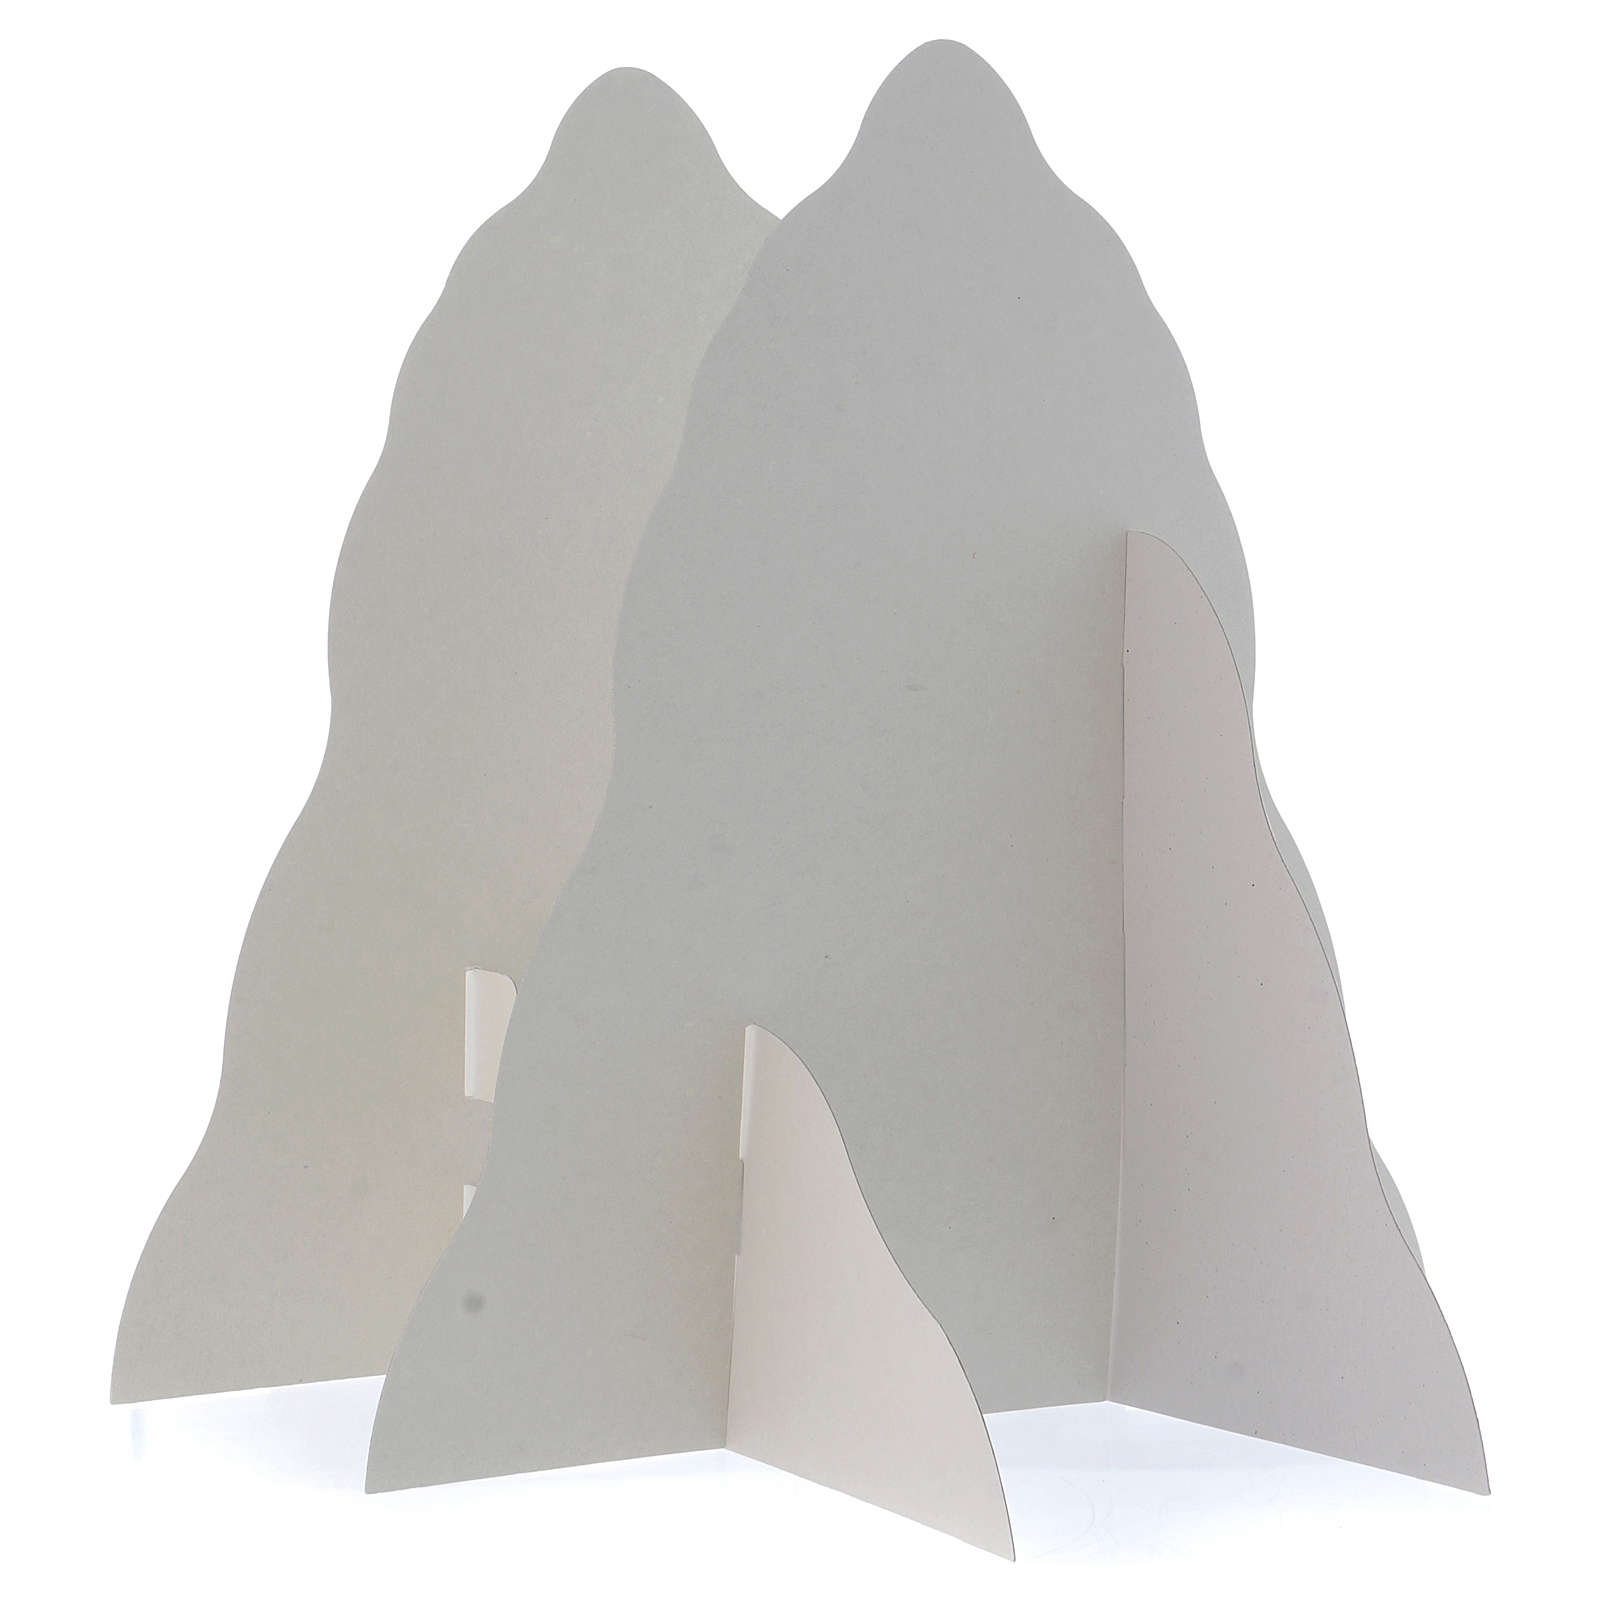 Paper Mountain Kit 95x65 (A1 paper) h mountain 35 cm 4